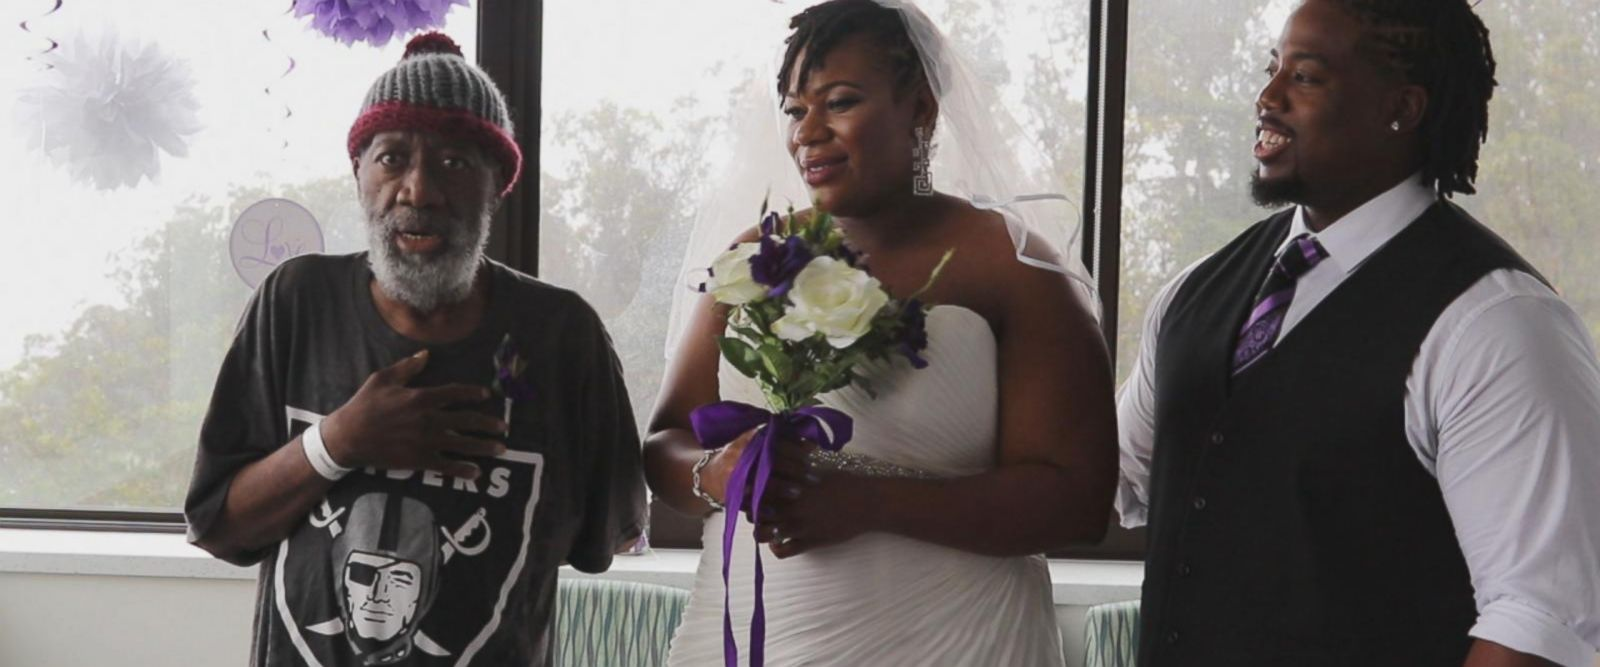 VIDEO: Bride surprises father fighting leukemia with wedding inside hospital